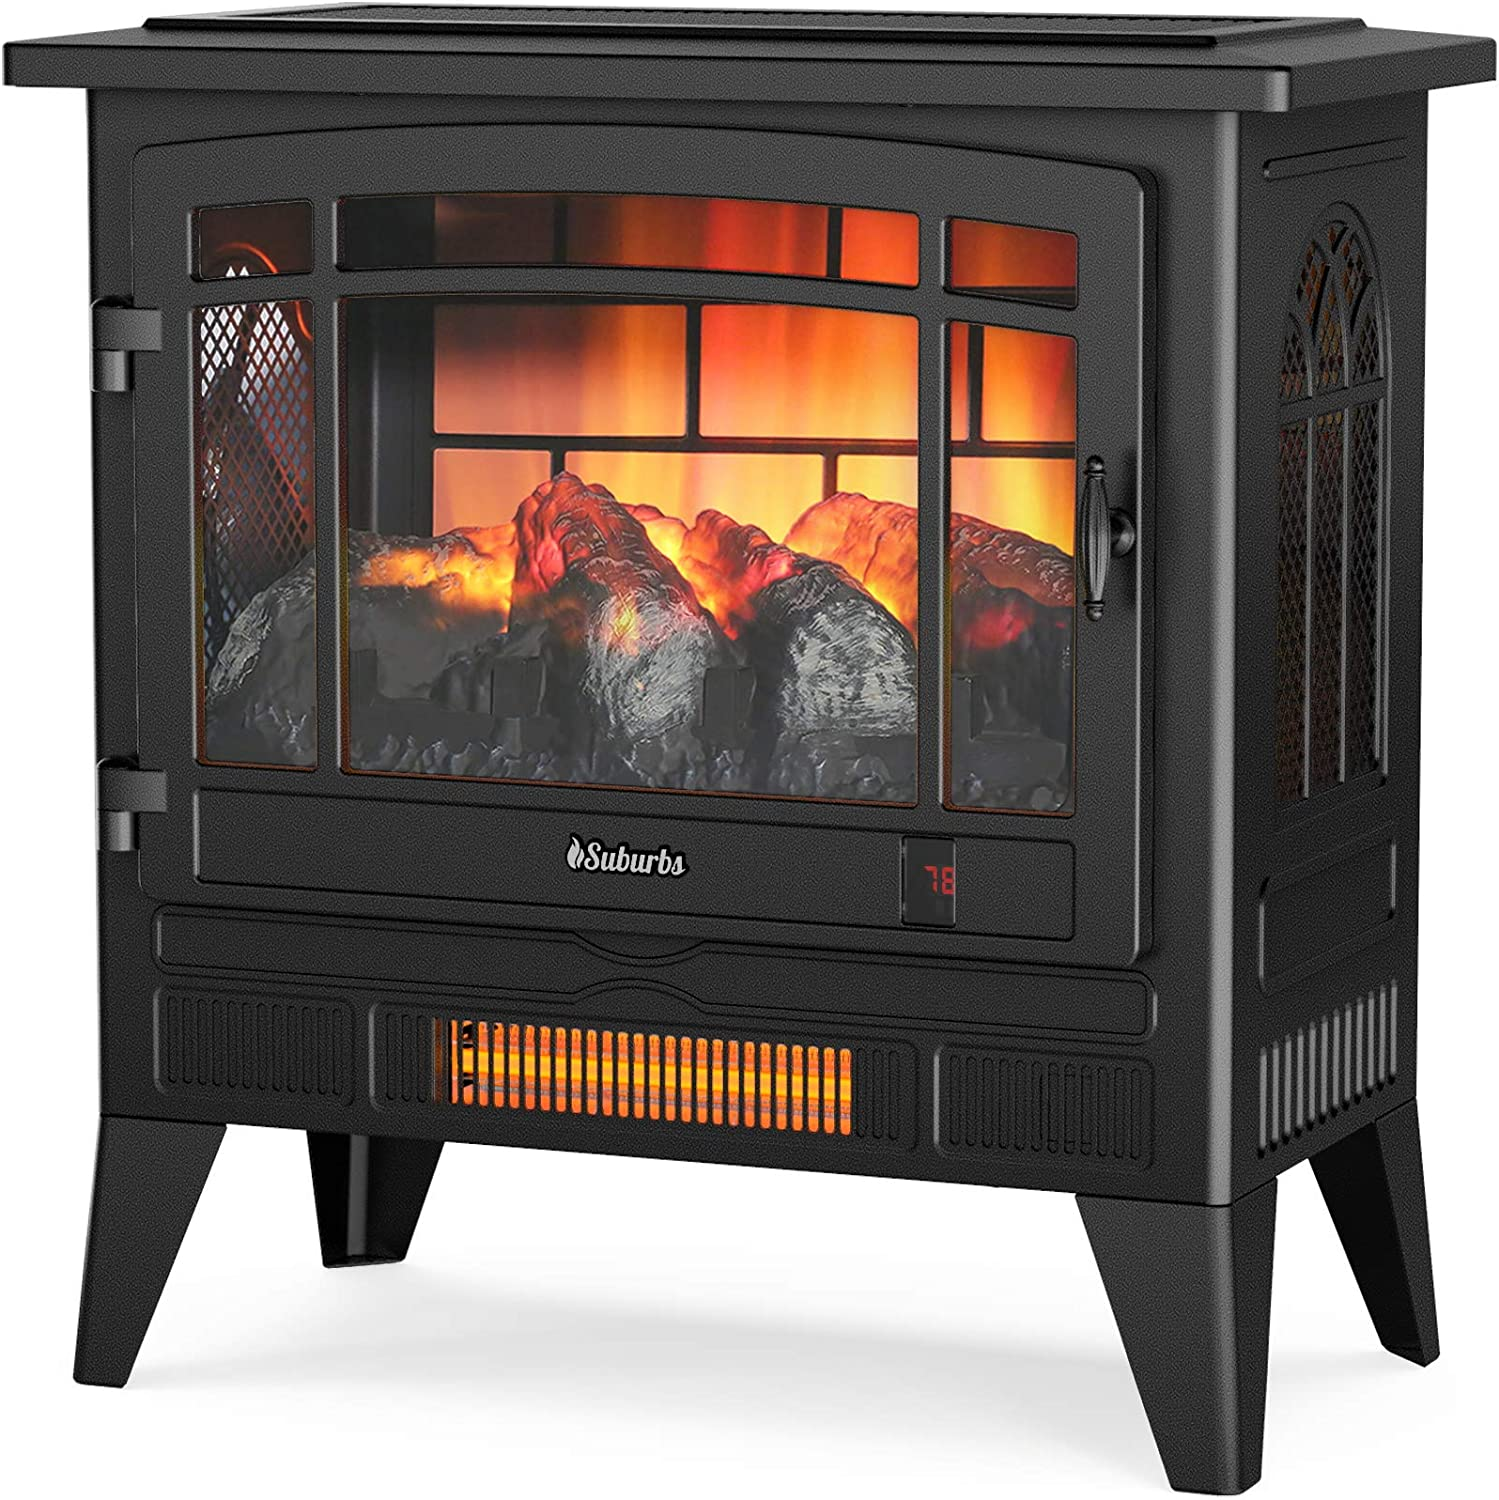 TURBRO Suburbs TS25 Electric Fireplace Heater Max 60% OFF Freesta Infrared - Large discharge sale